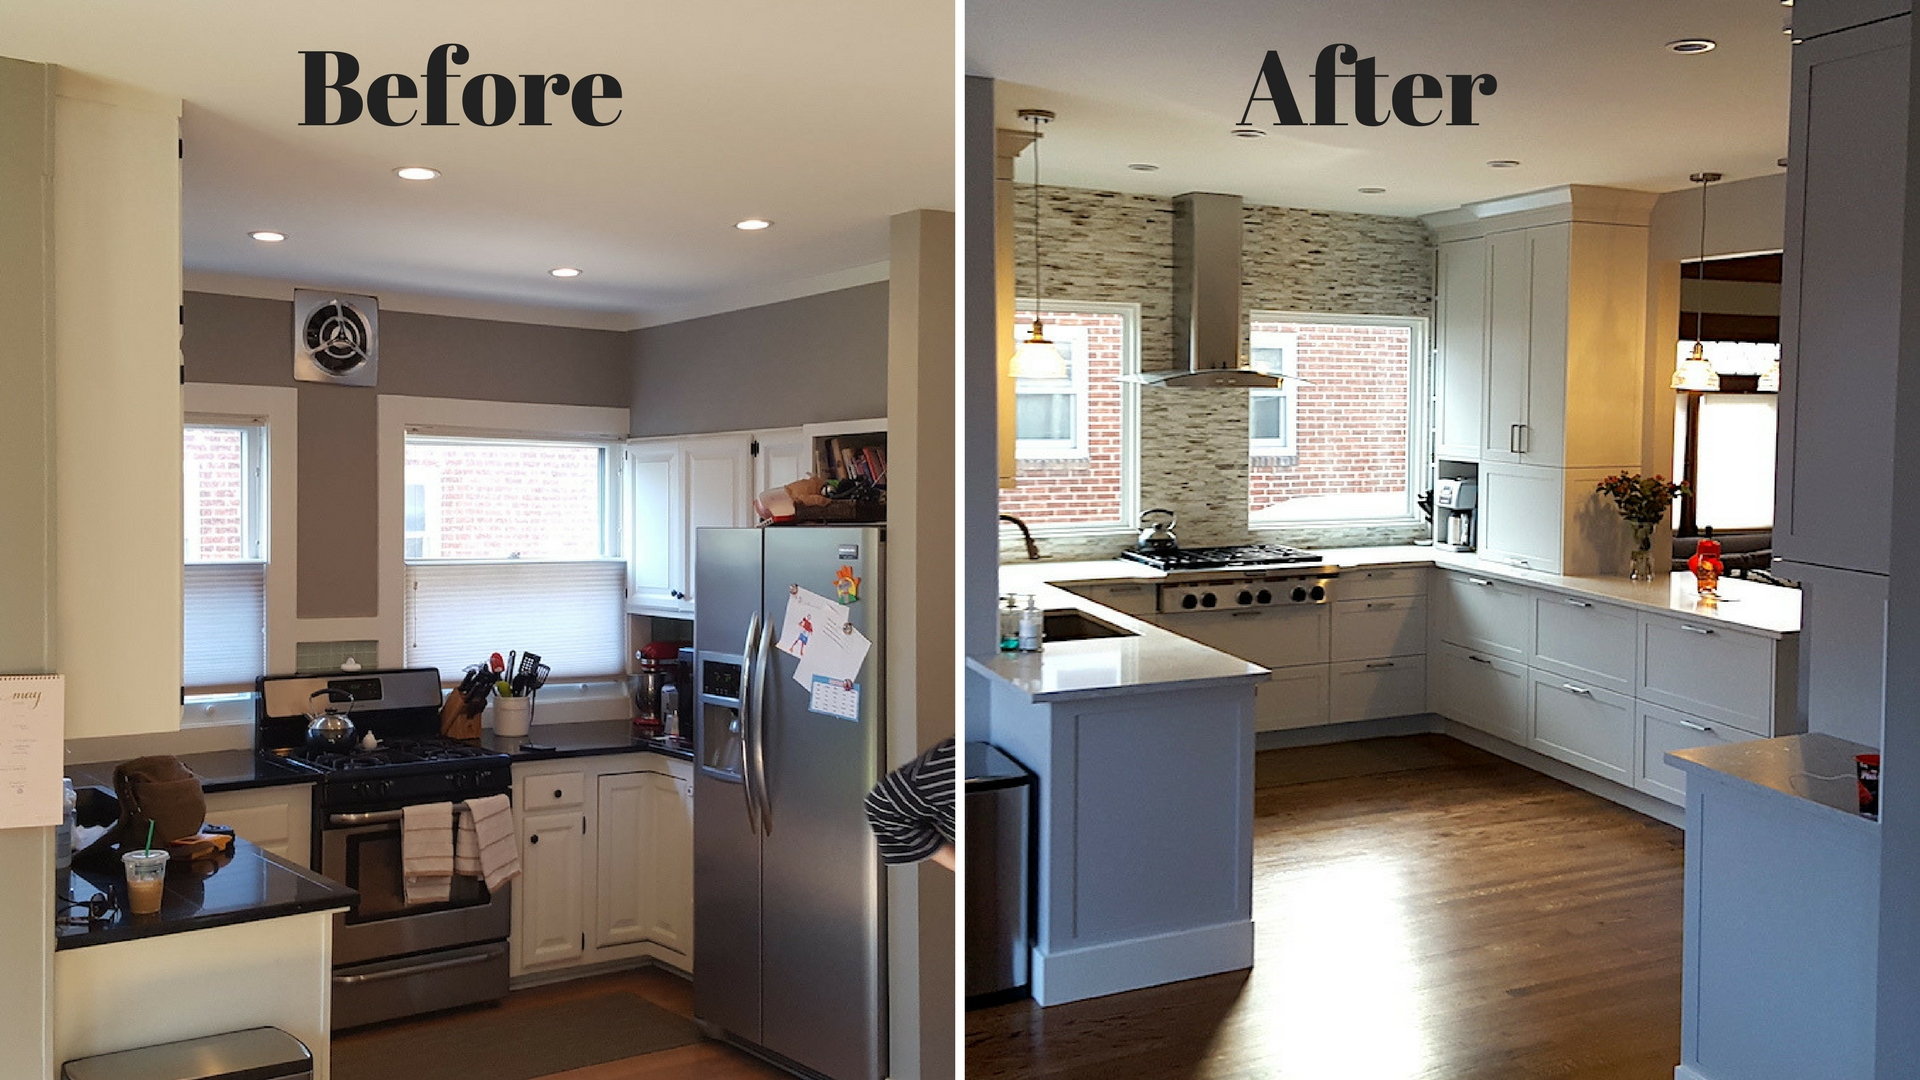 3 Amazing Kitchen Remodel Ideas - Homes By Christian ... on Kitchen Remodeling Ideas  id=64139